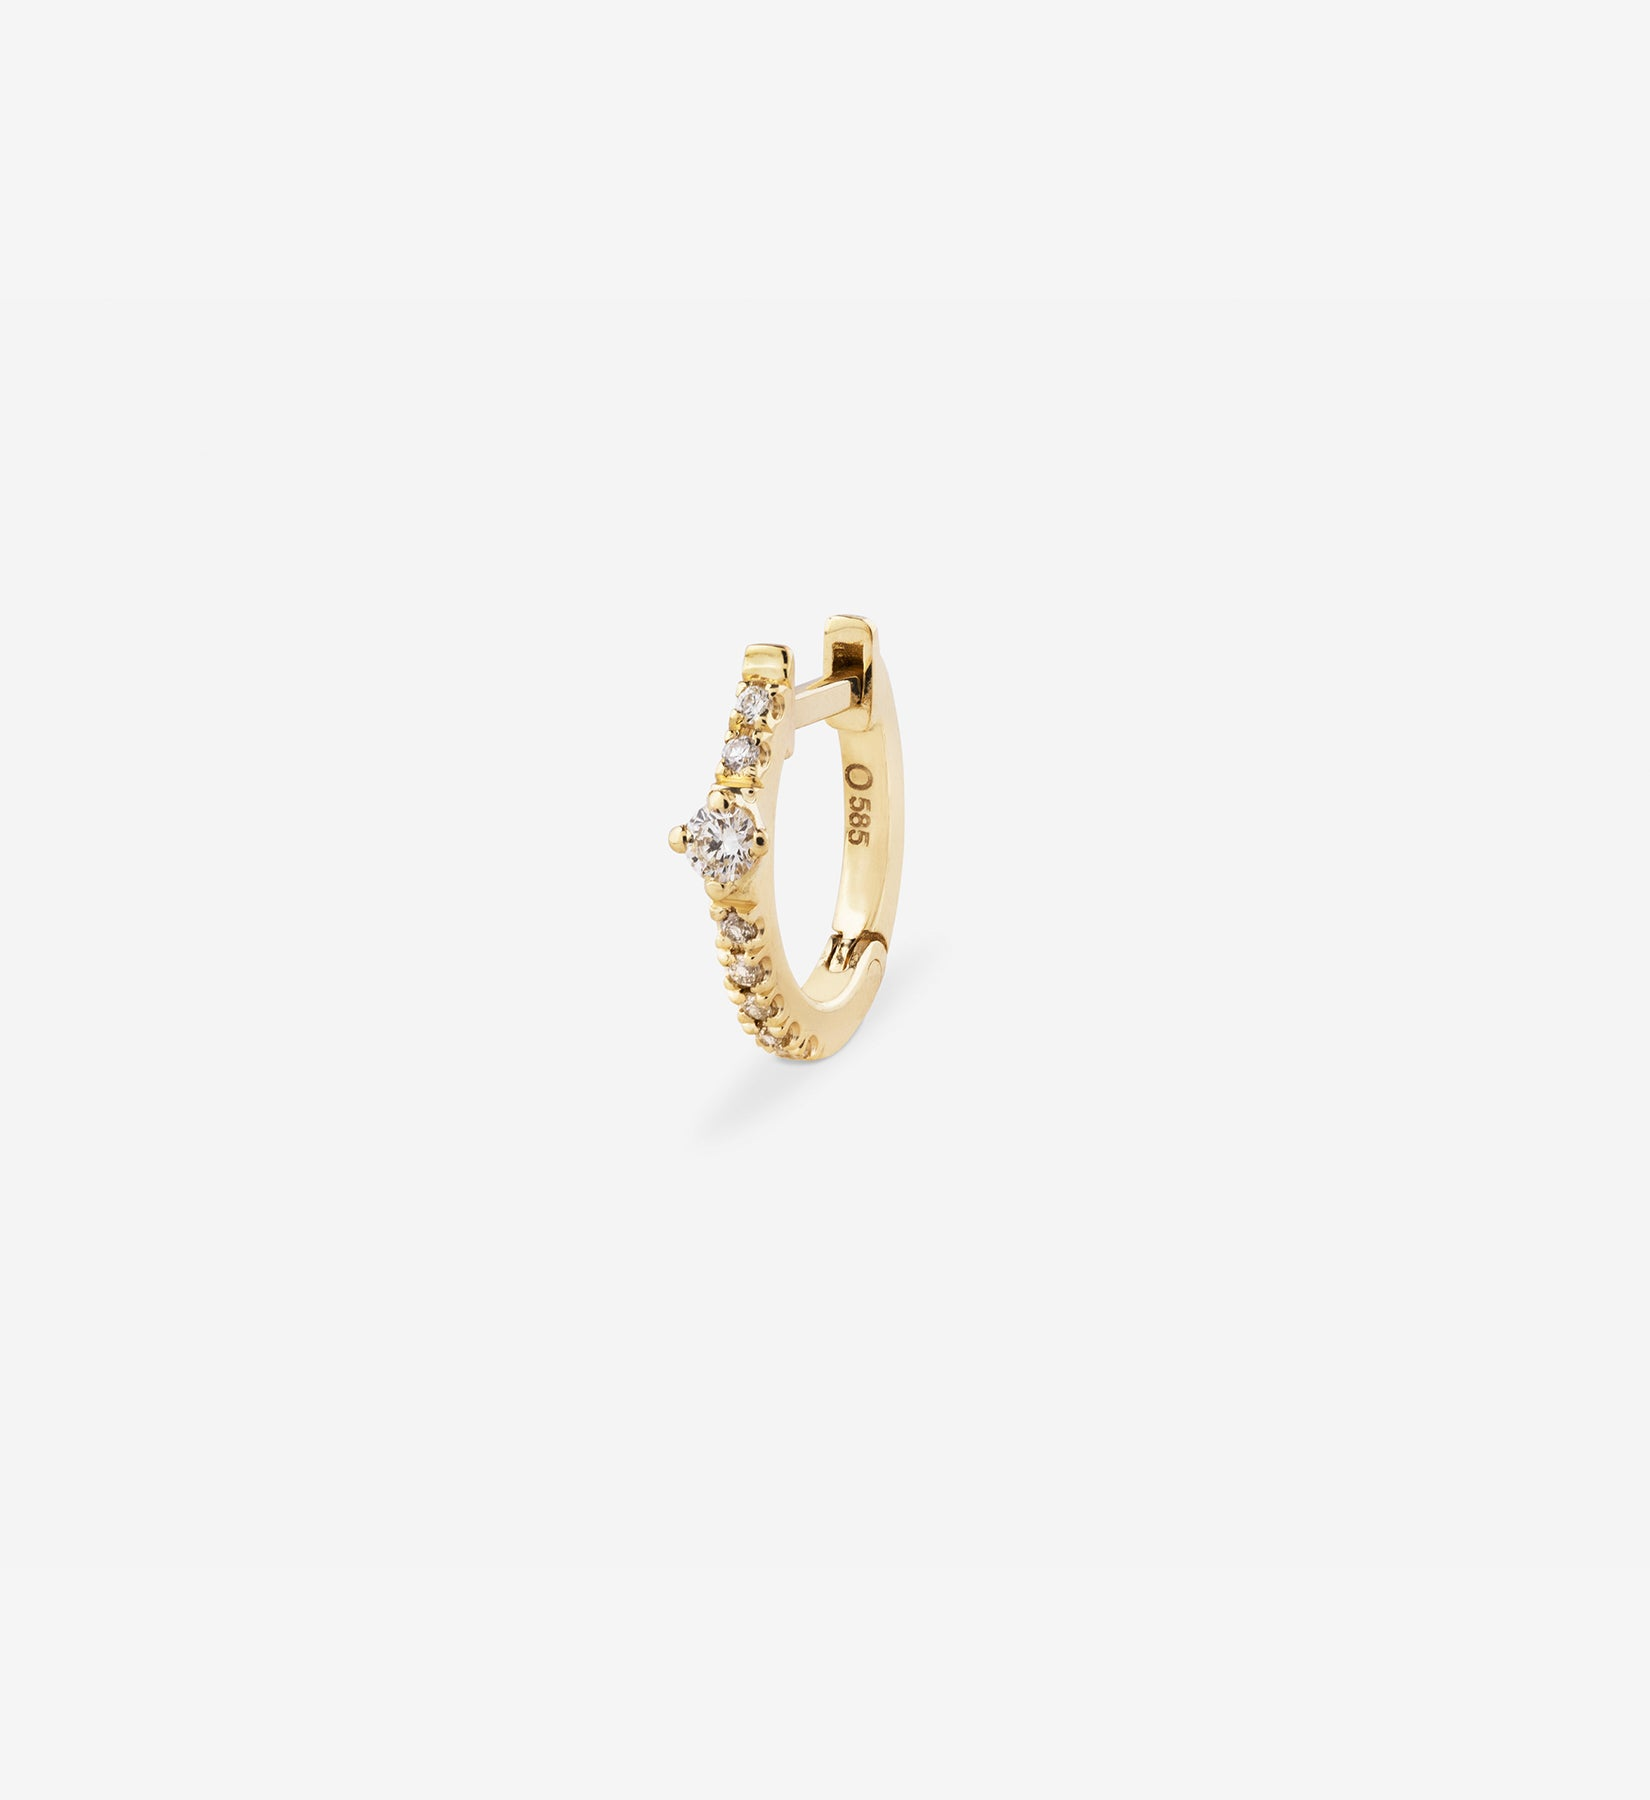 OUVERTURE, Fine jewelry, 14K gold, diamonds, golden ring, diamond ring, golden earring, diamond earring. Handcrafted jewelry. Designed in Berlin. Honestly priced. Demifine. Earparty. Stacking rings. Diamond Huggie, Huggie earring, golden huggie earring, diamond huggie earring